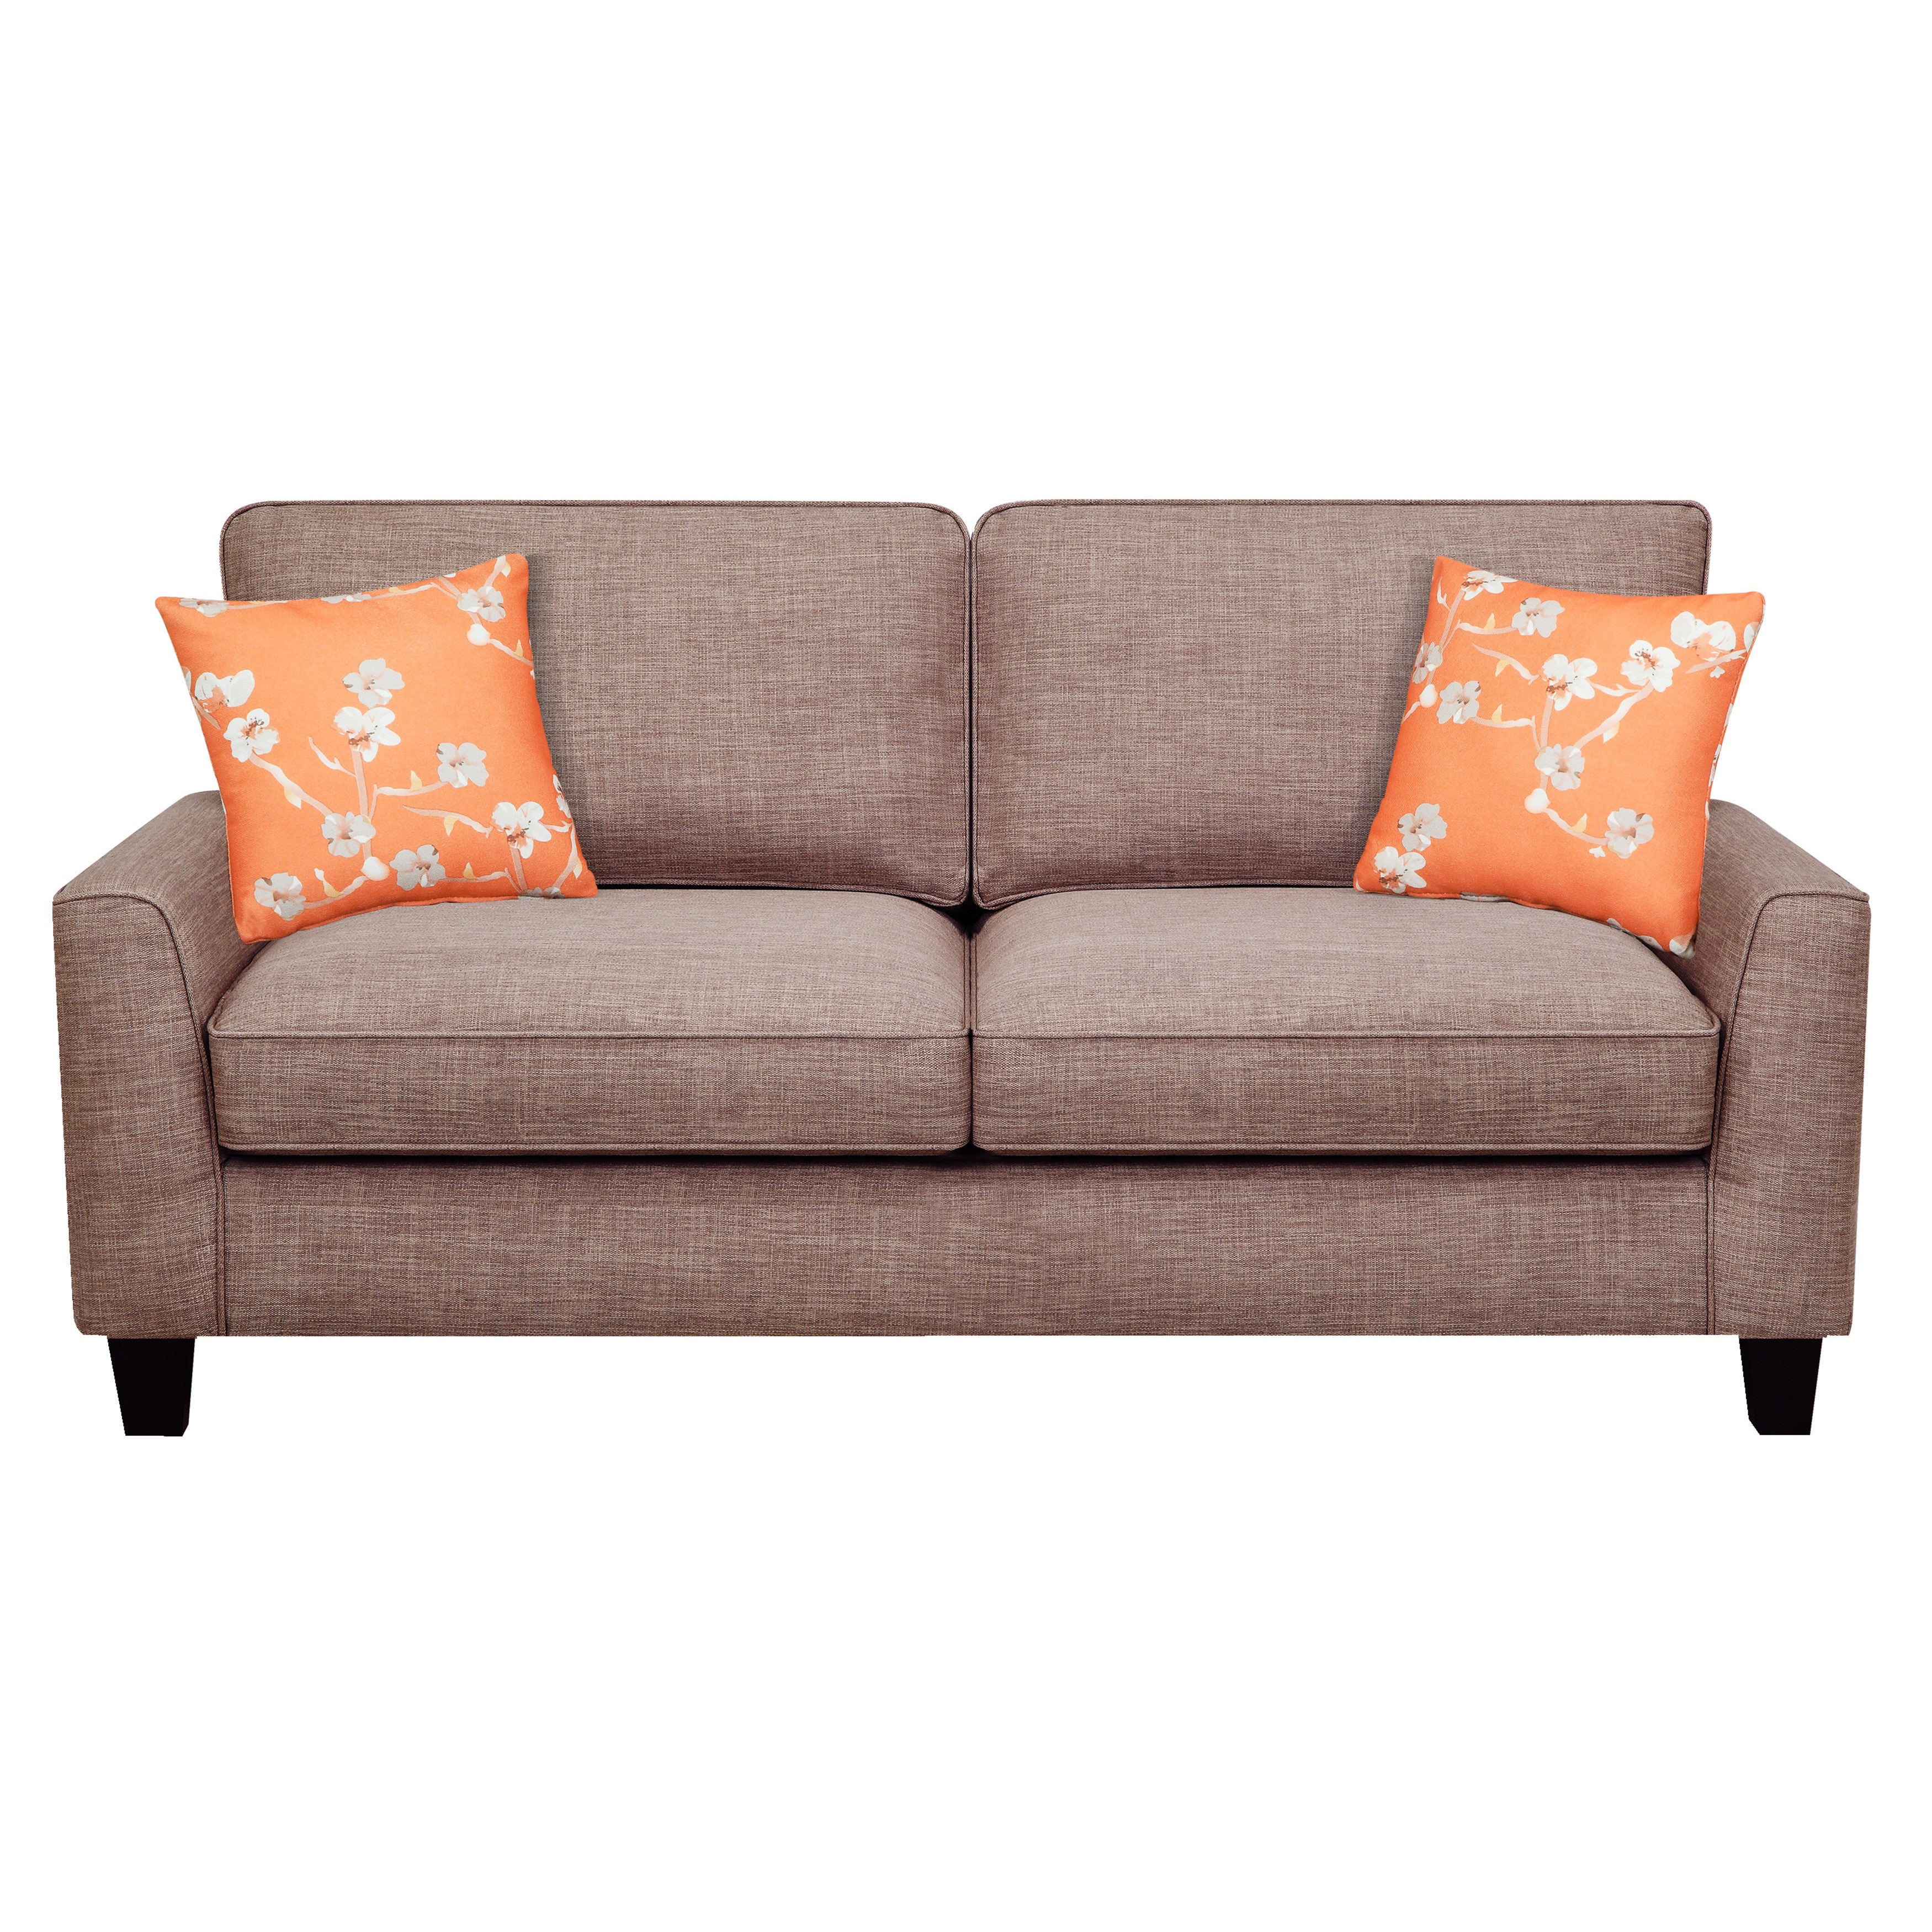 a couch of full chaise sofa convertible best with size serta and hide bed sofas sectional loveseat queen futon sleeper